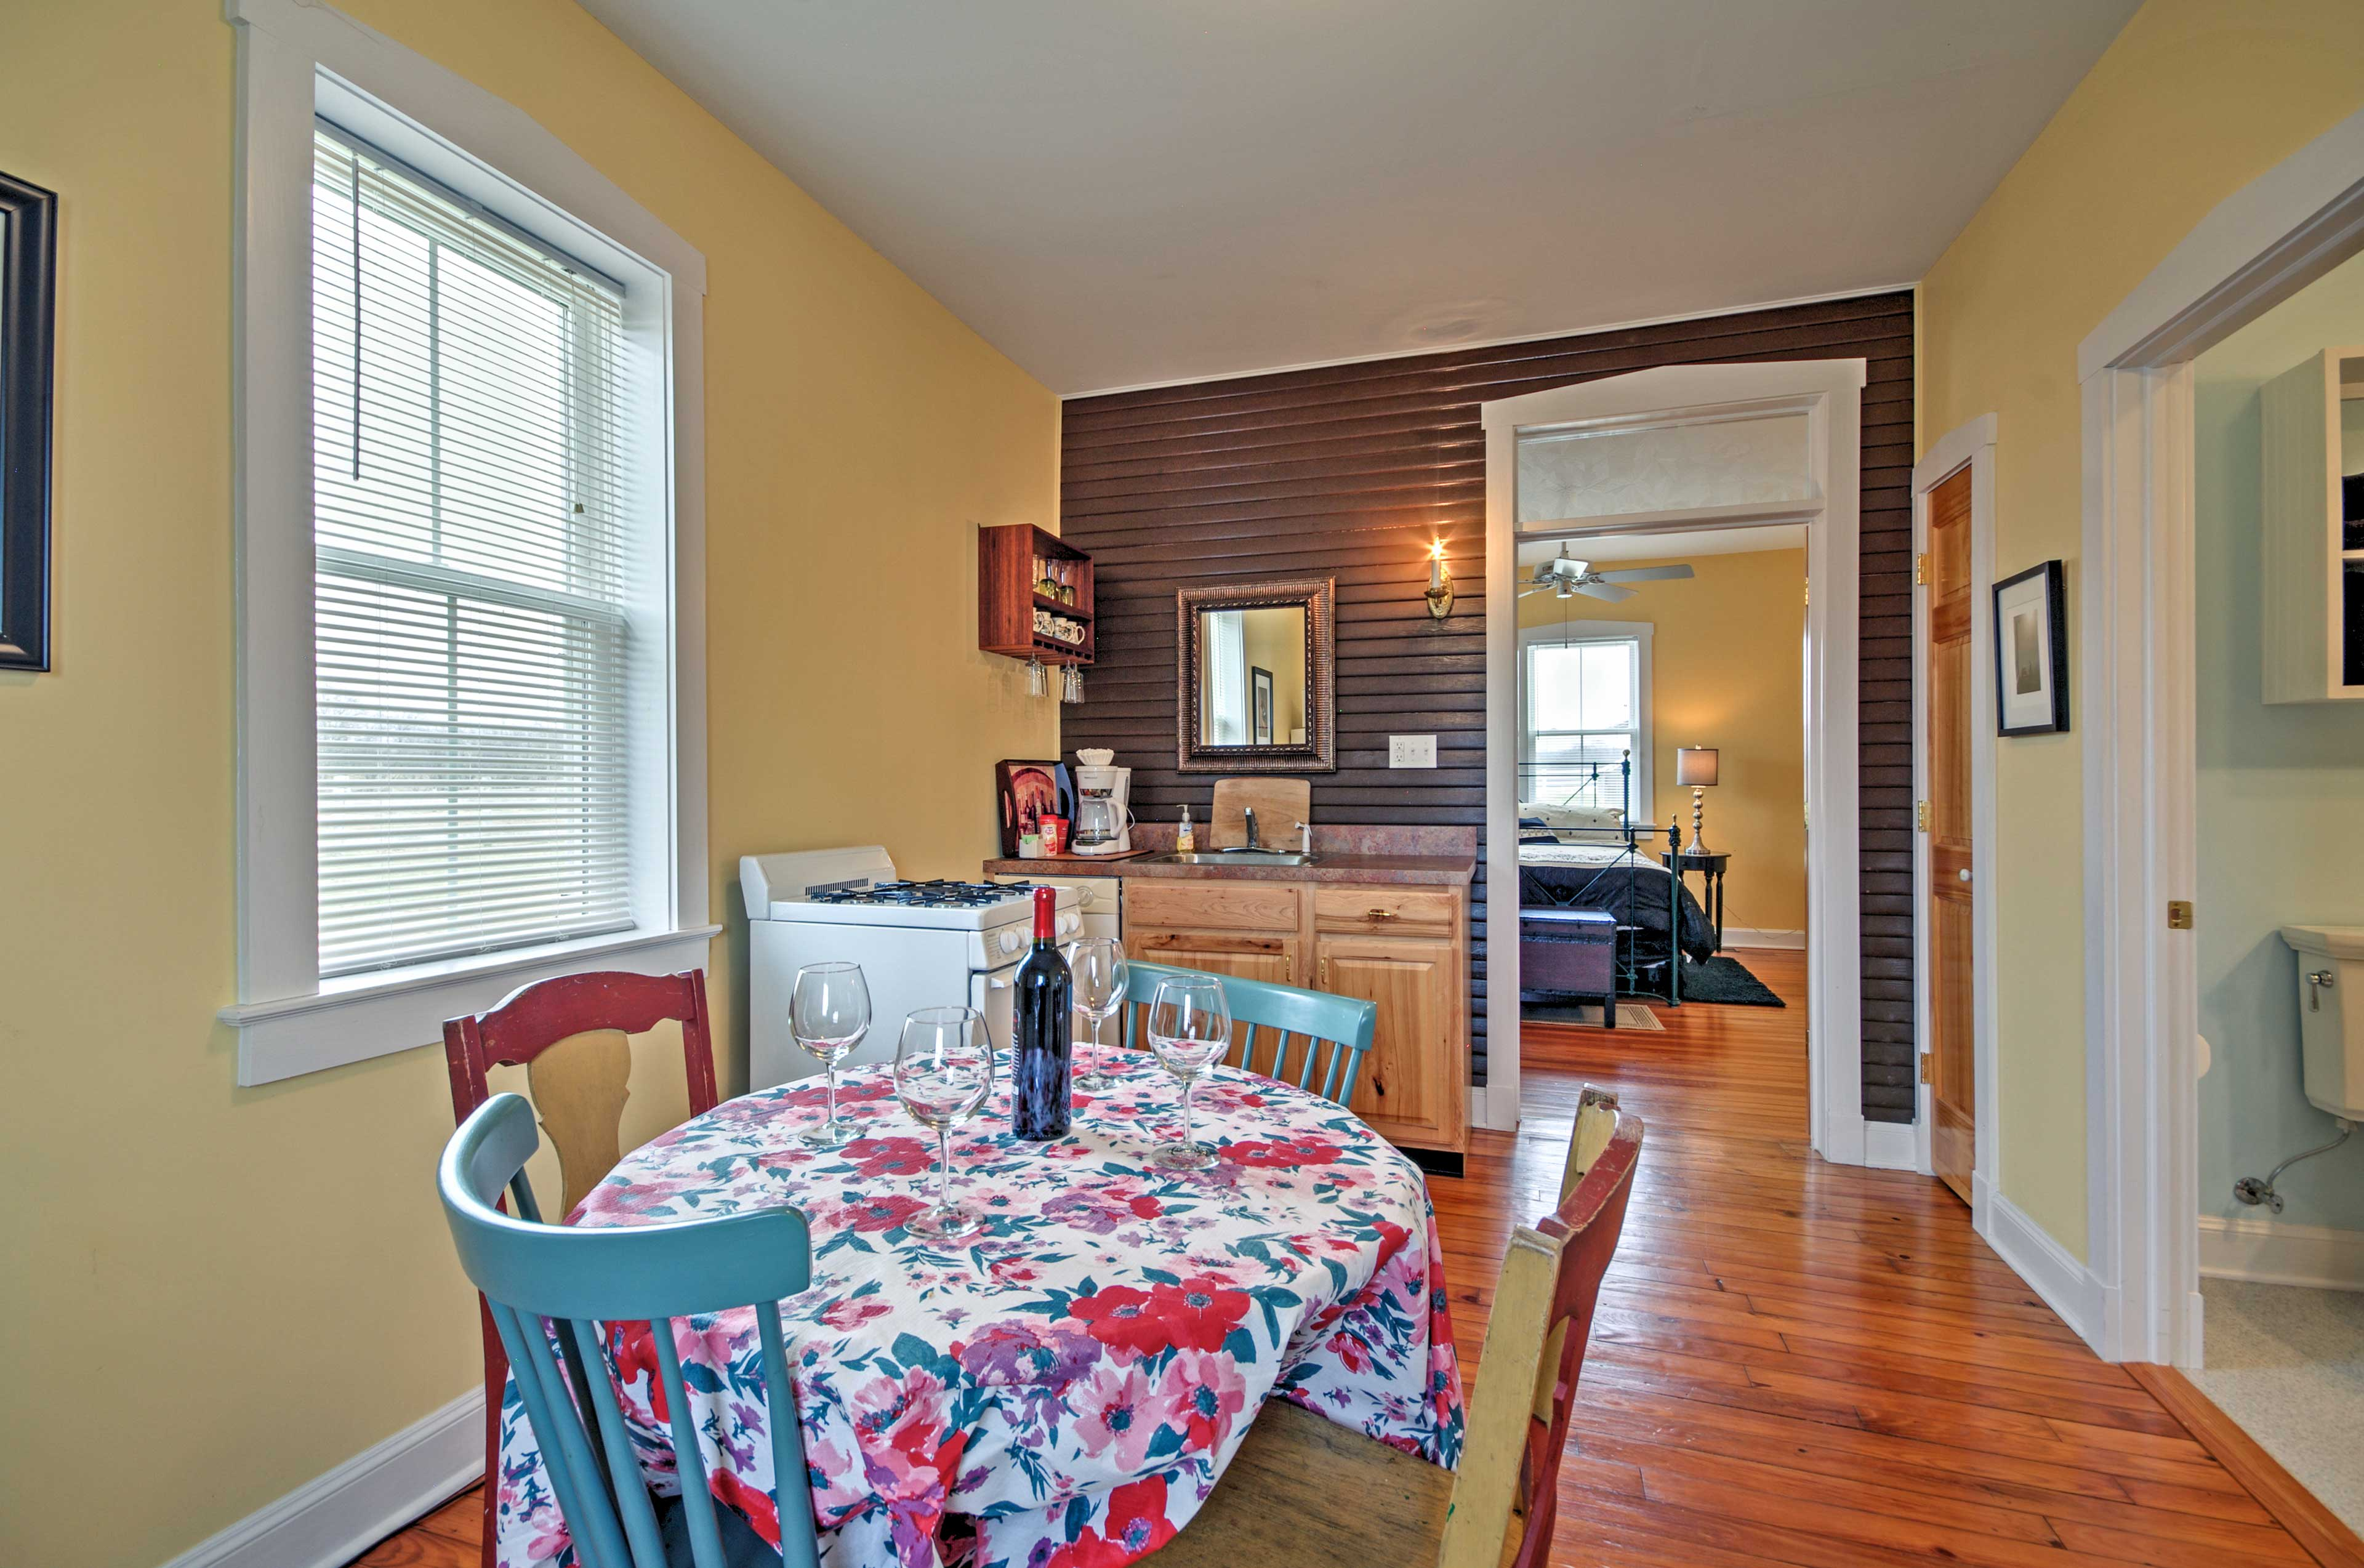 The living space features gleaming hardwood floors.